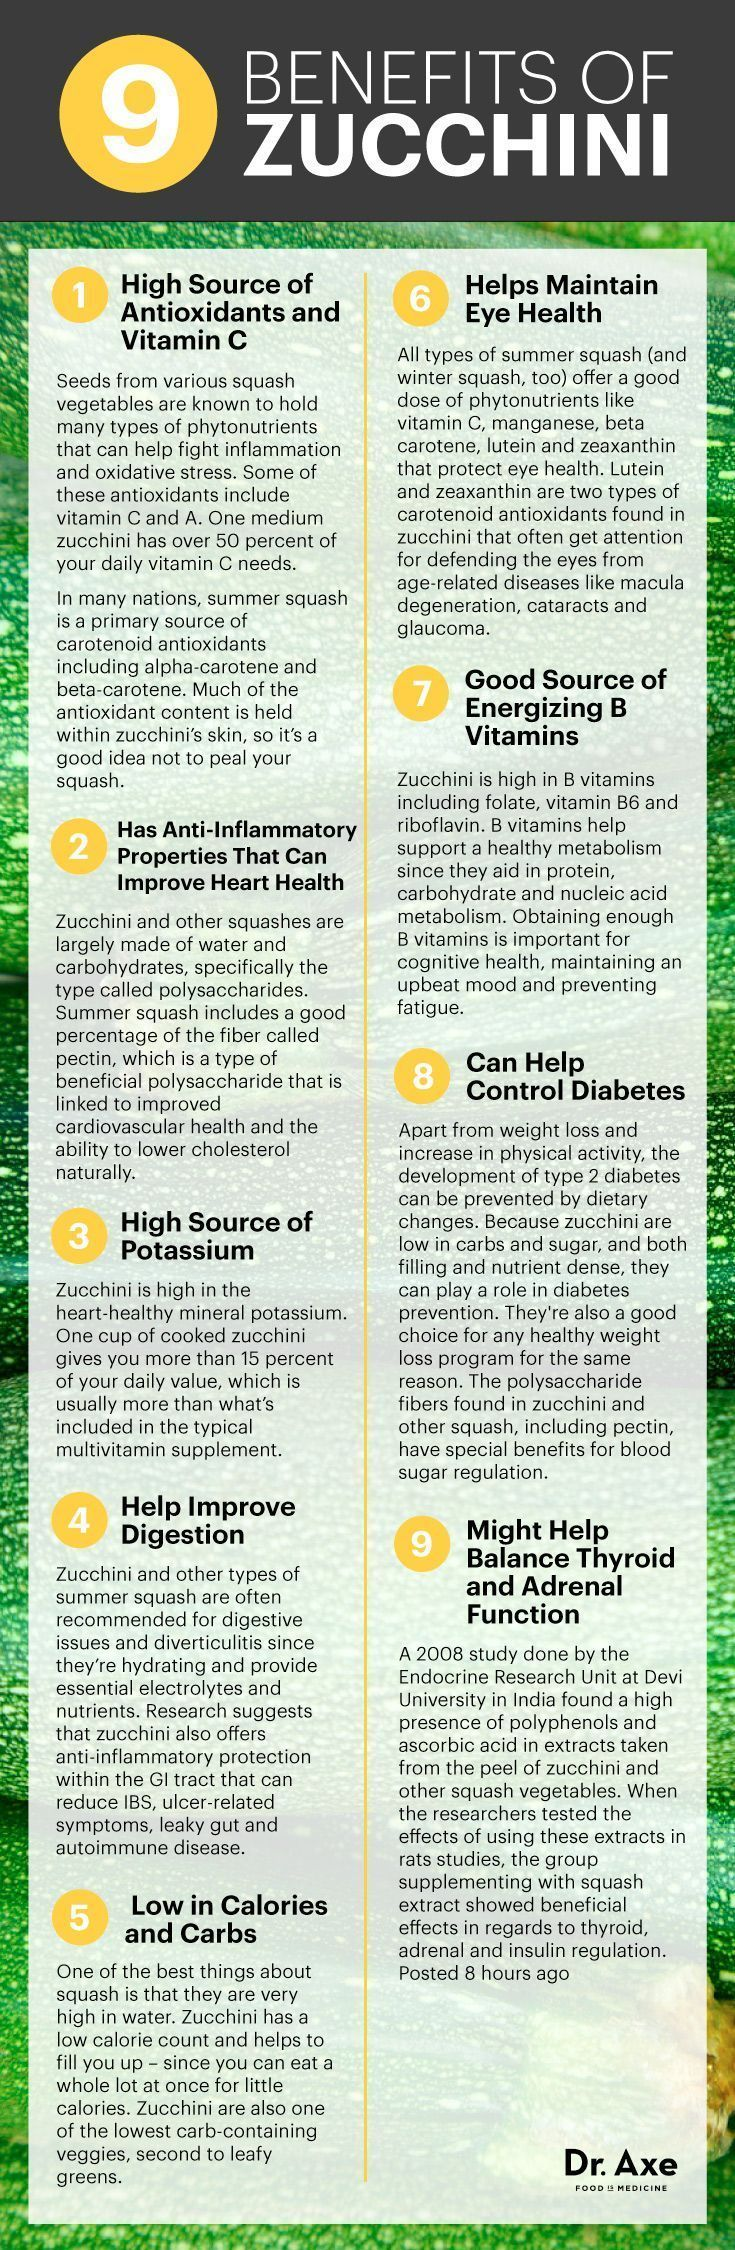 Zucchini benefits infographic - Dr. Axe  #health #holistic #natural